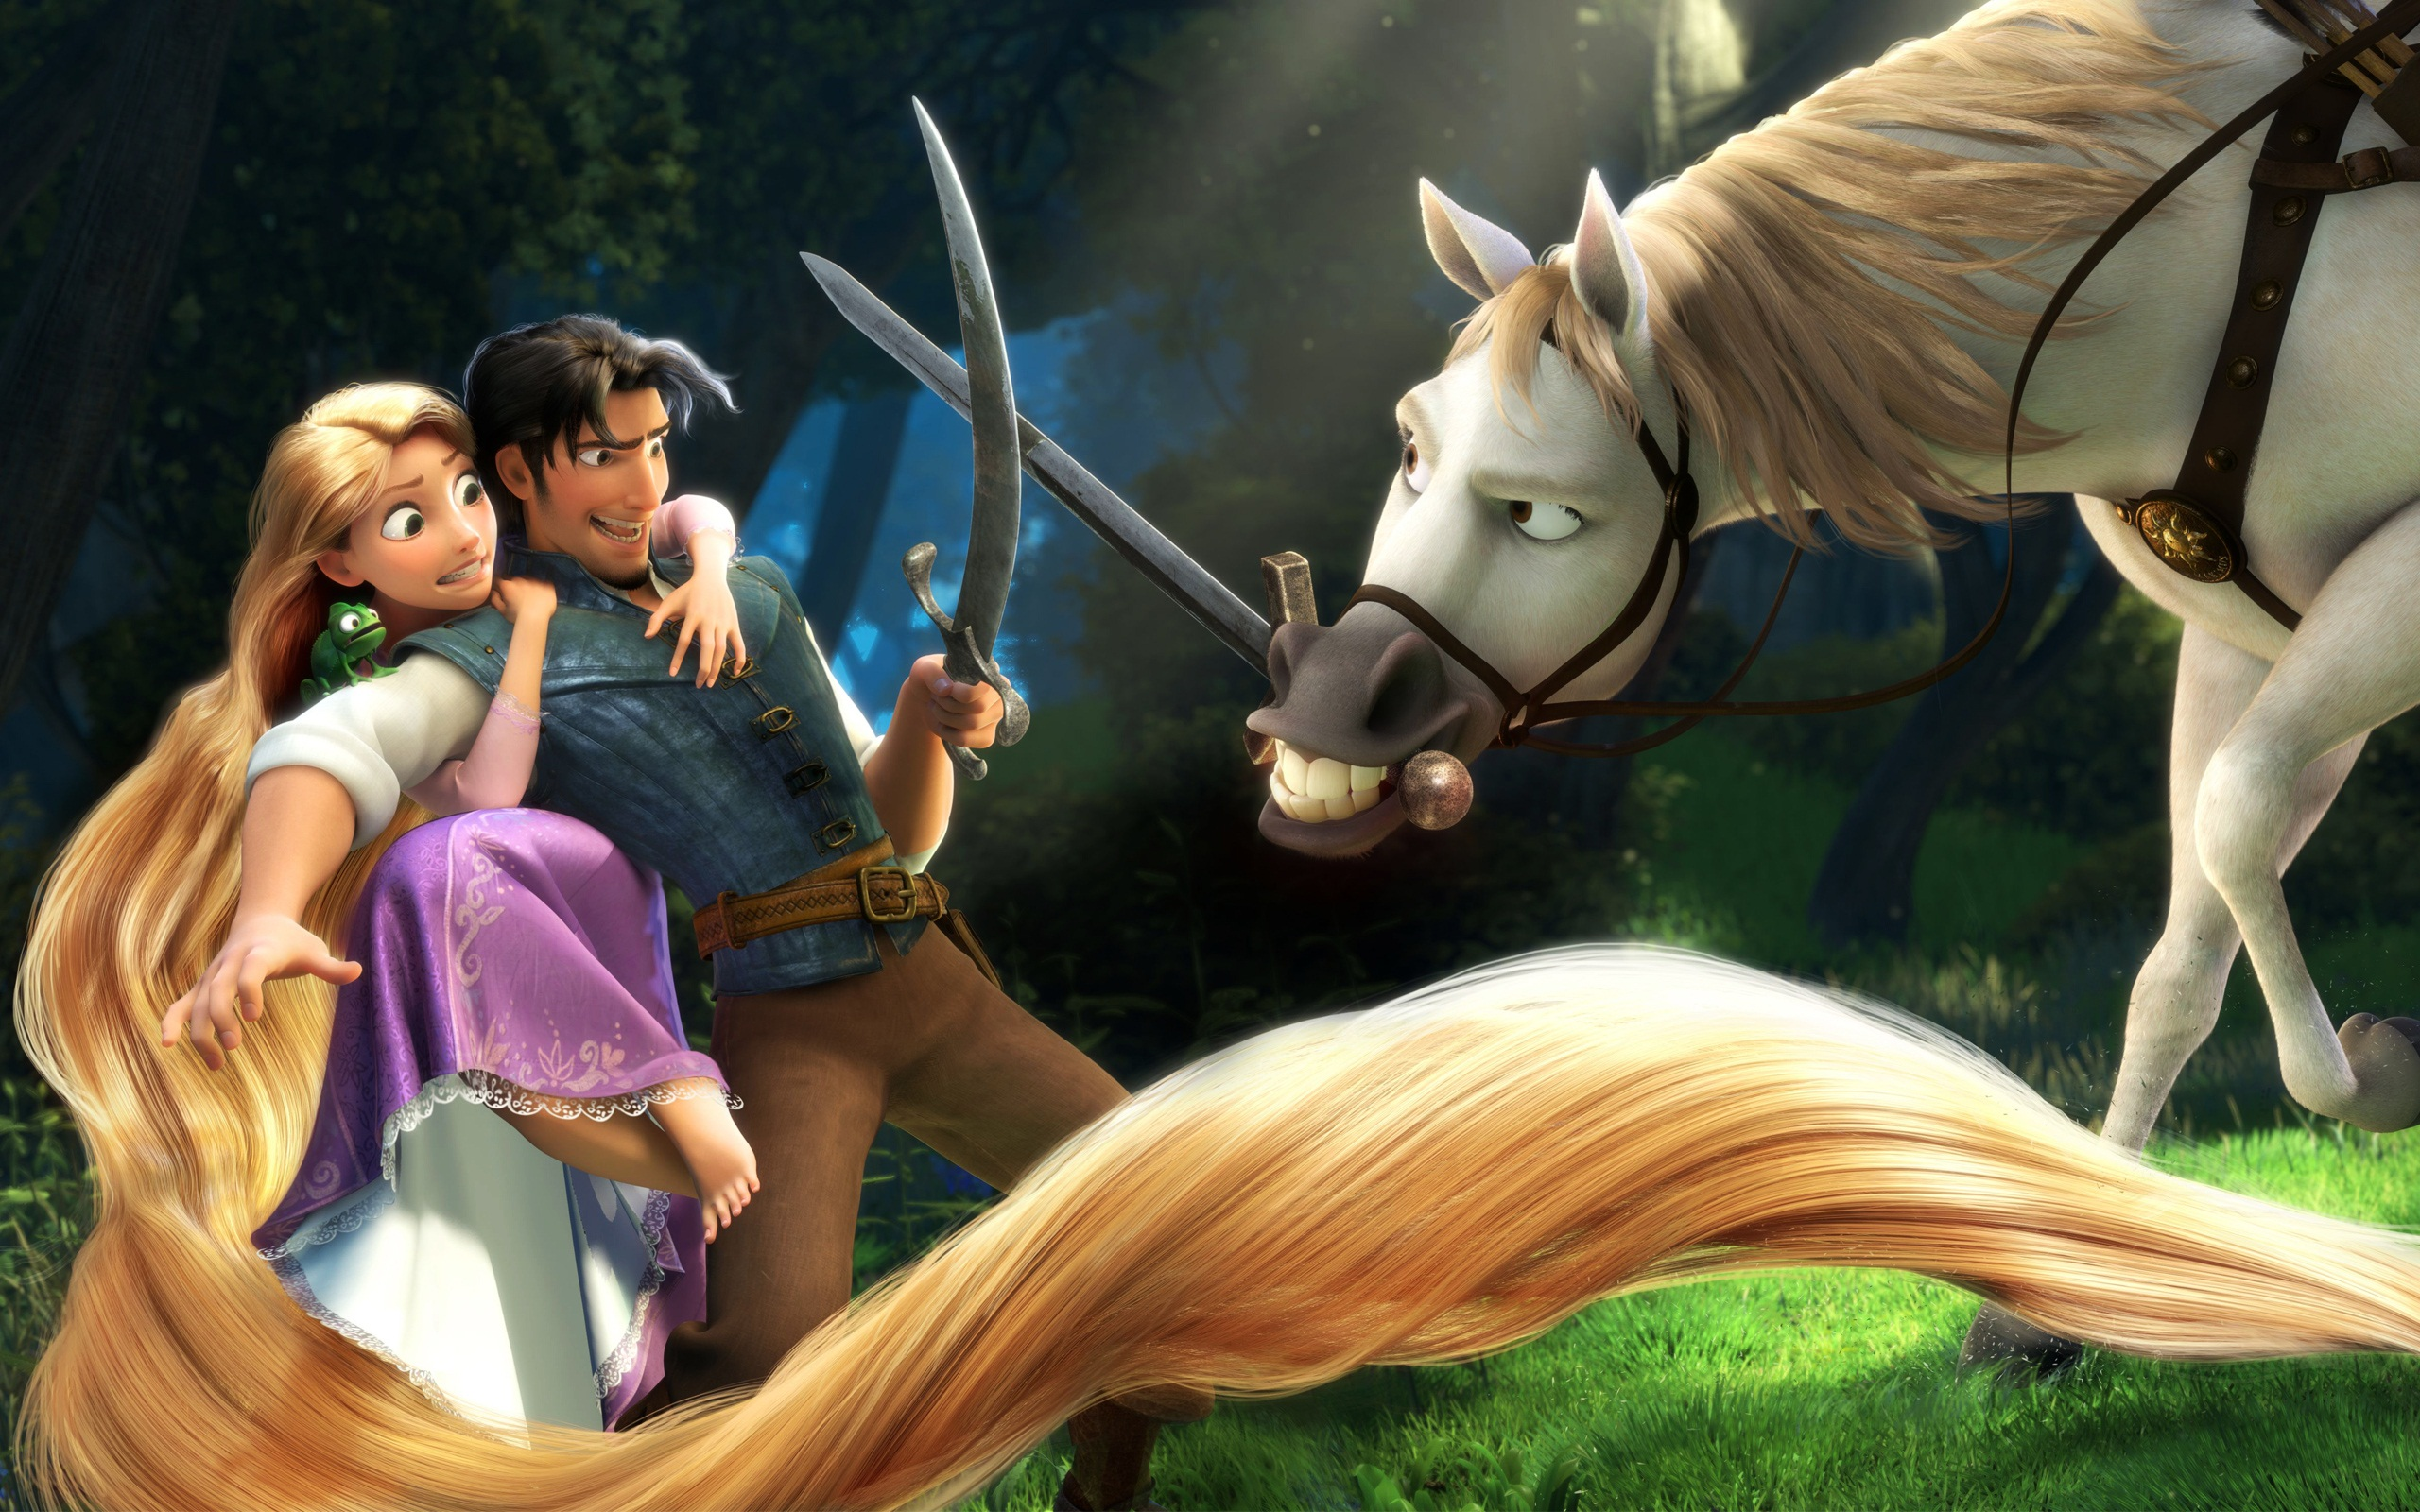 Rapunzel & Flynn in Tangled